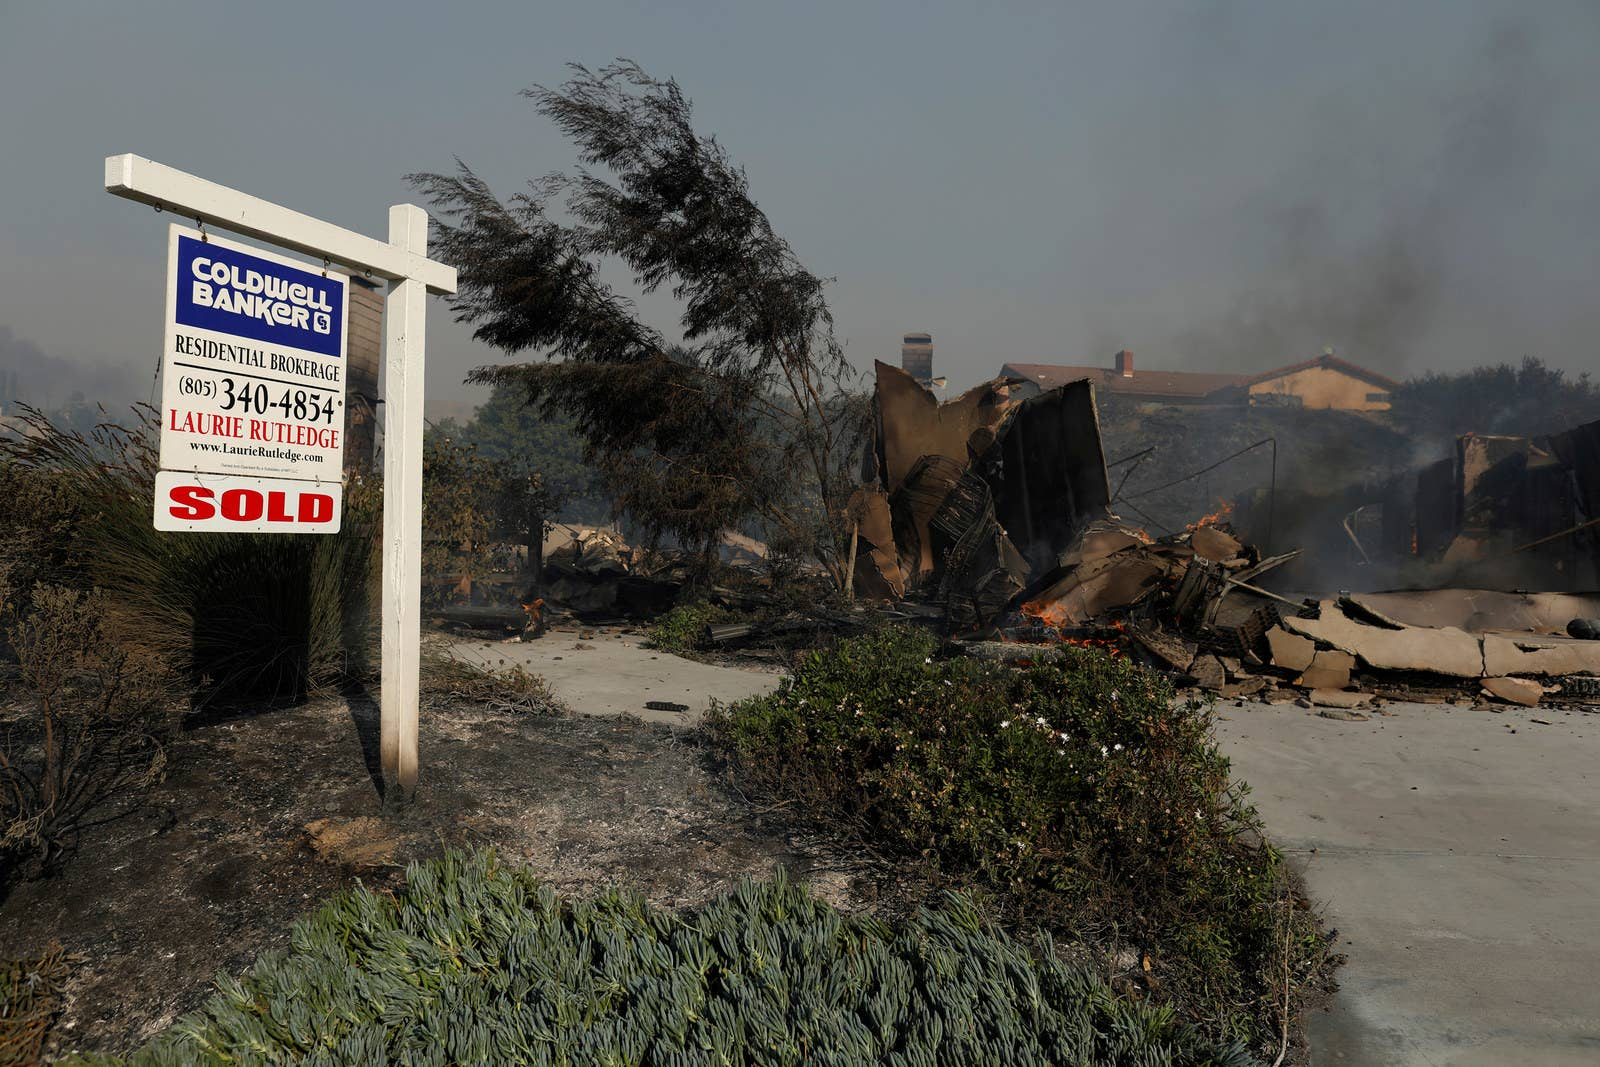 A Real Estate Sign Next To The Remains Of Destroyed Home